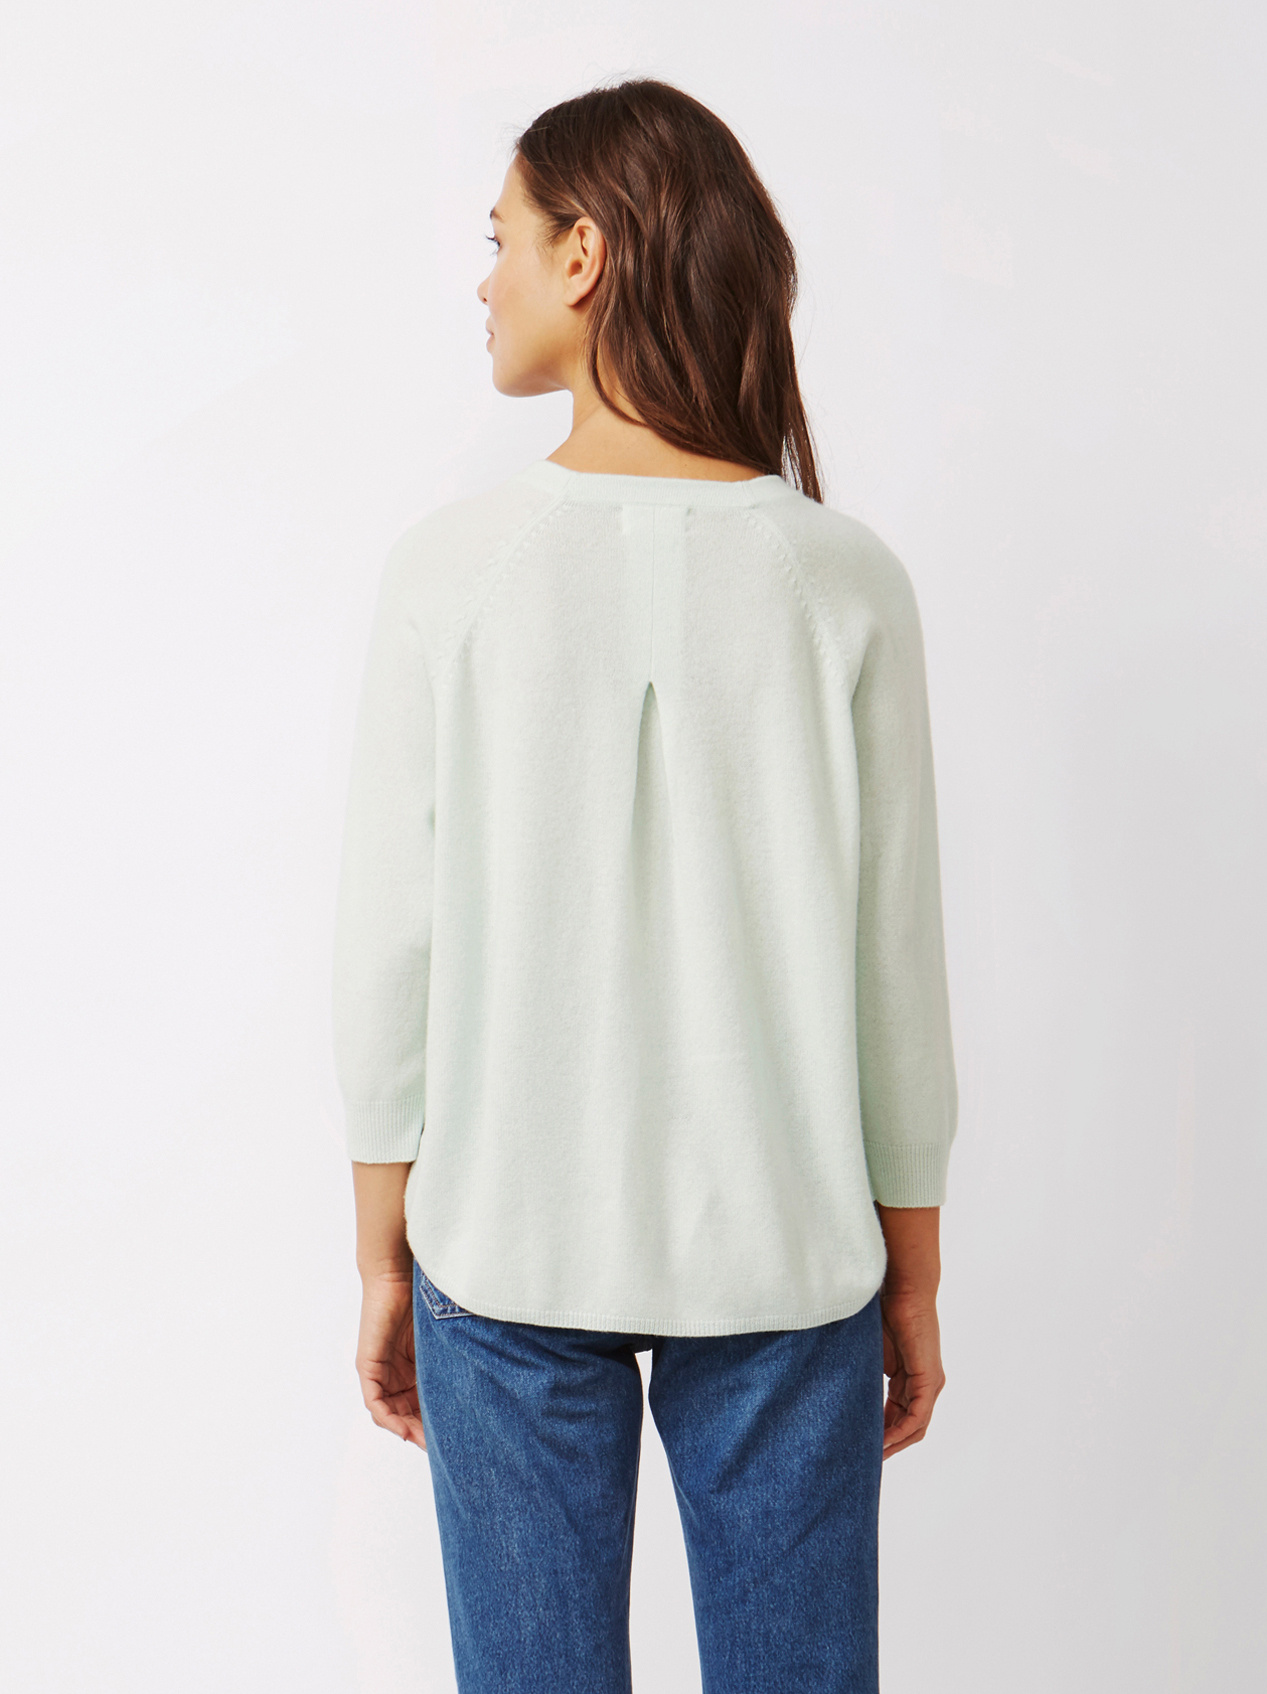 Soft Goat Women's Rounded Sweater Sorbet Mint